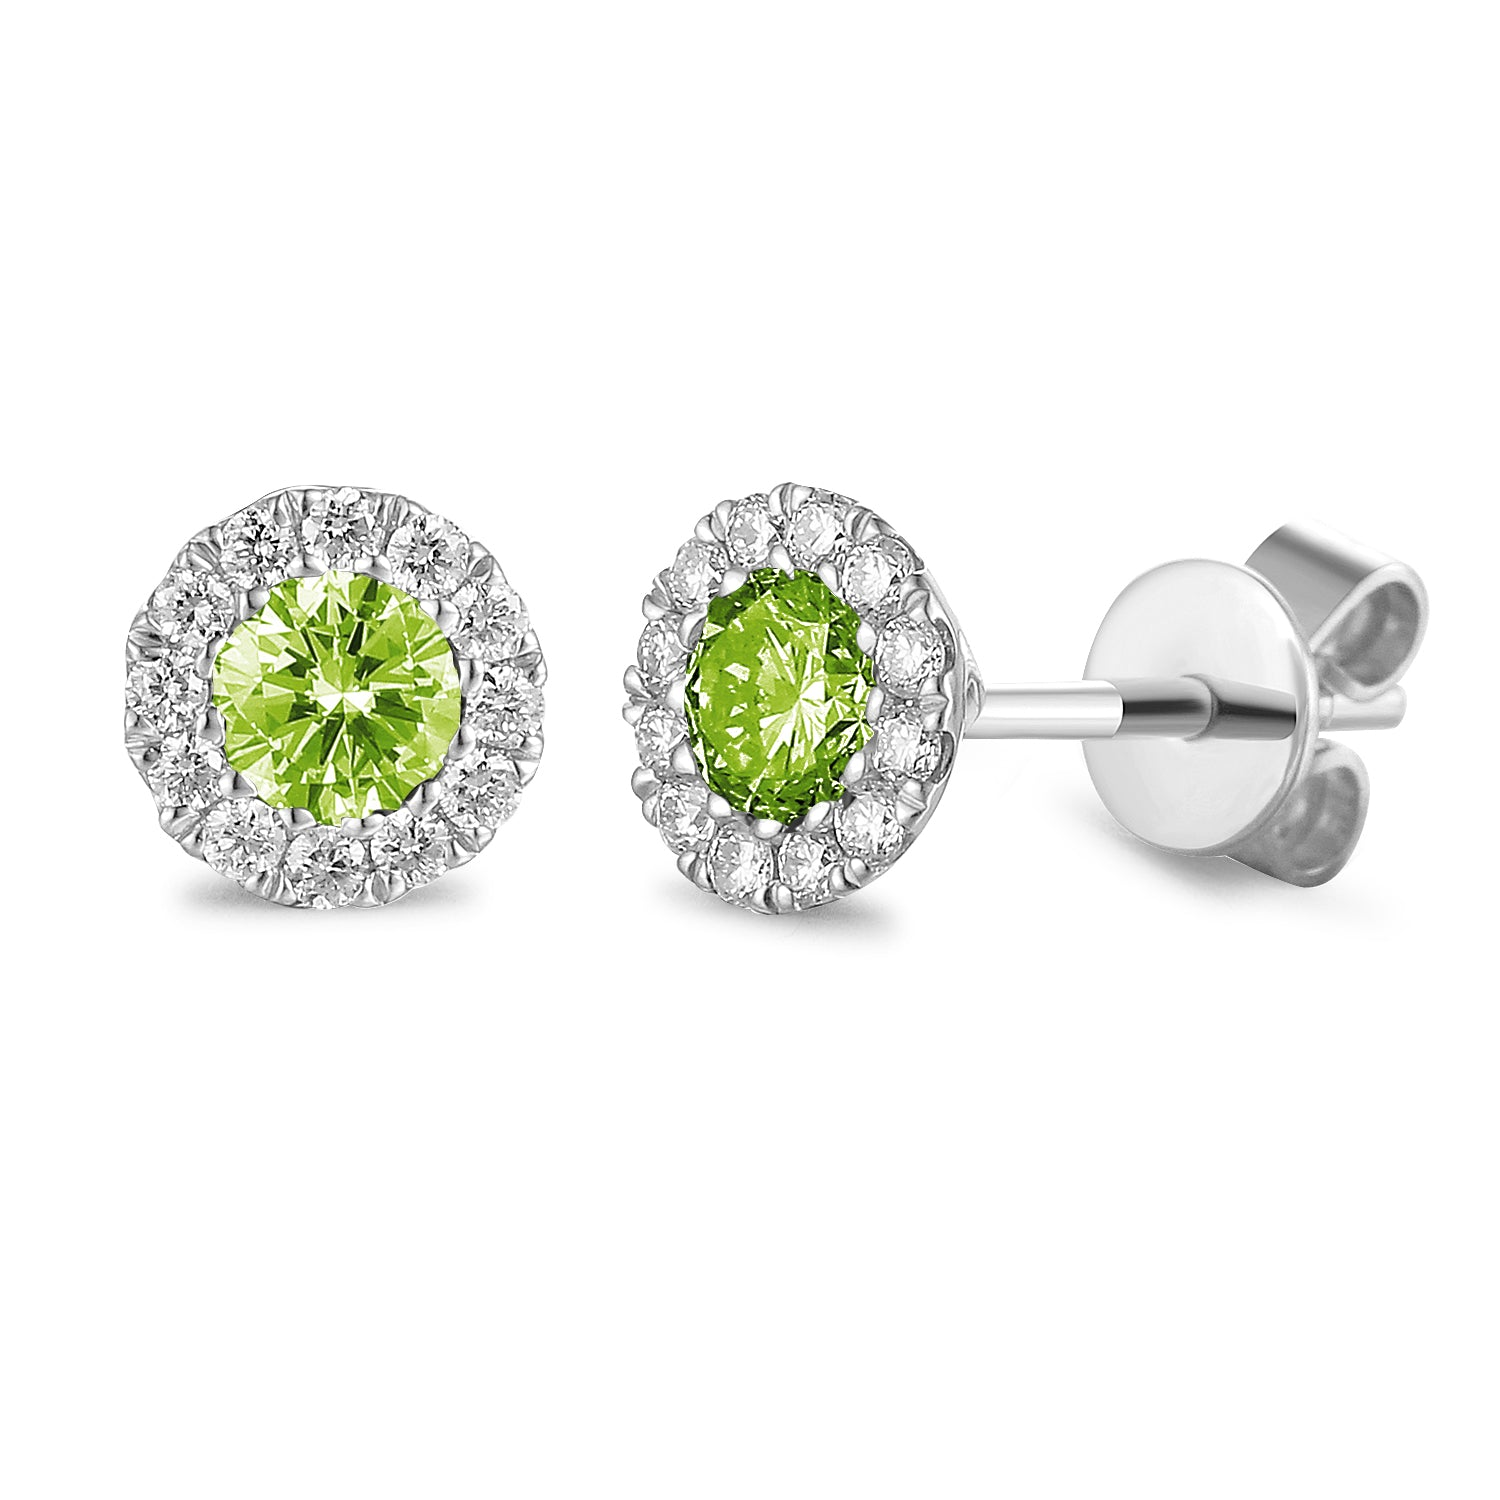 AUGUST - 9ct White Gold Peridot and Diamond Cluster Earrings